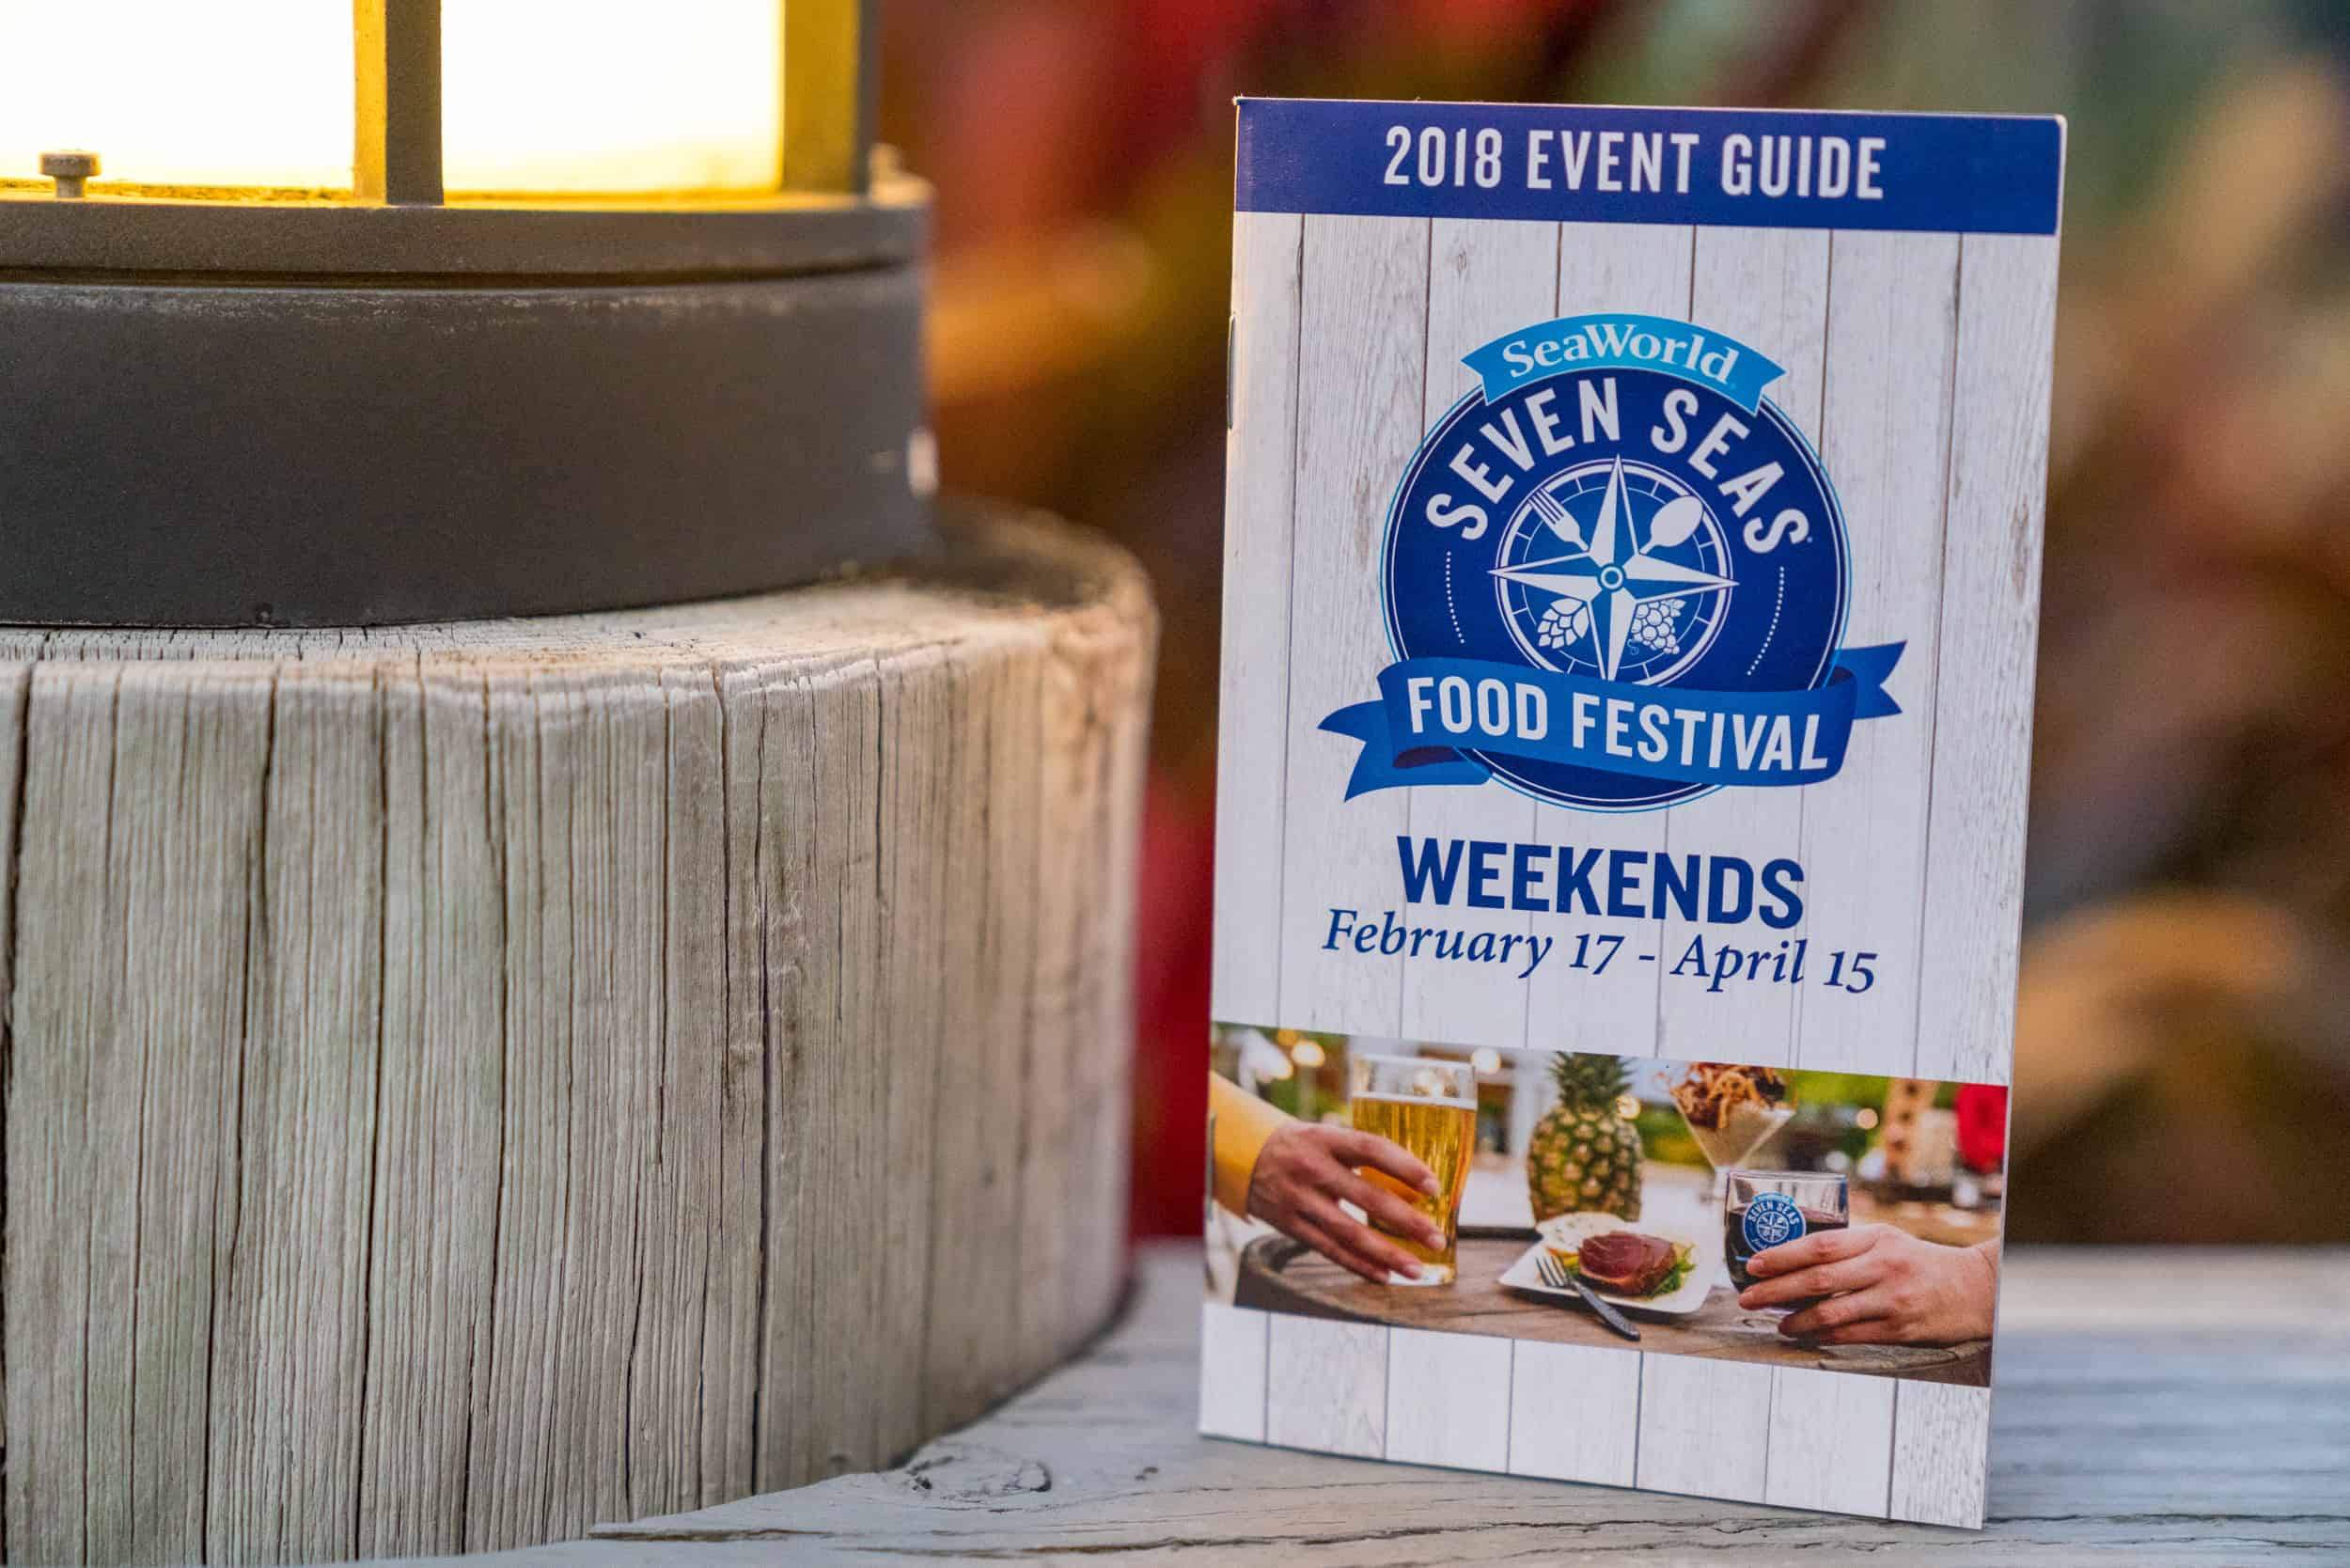 Preview: SeaWorld's Seven Seas Food Festival 2018